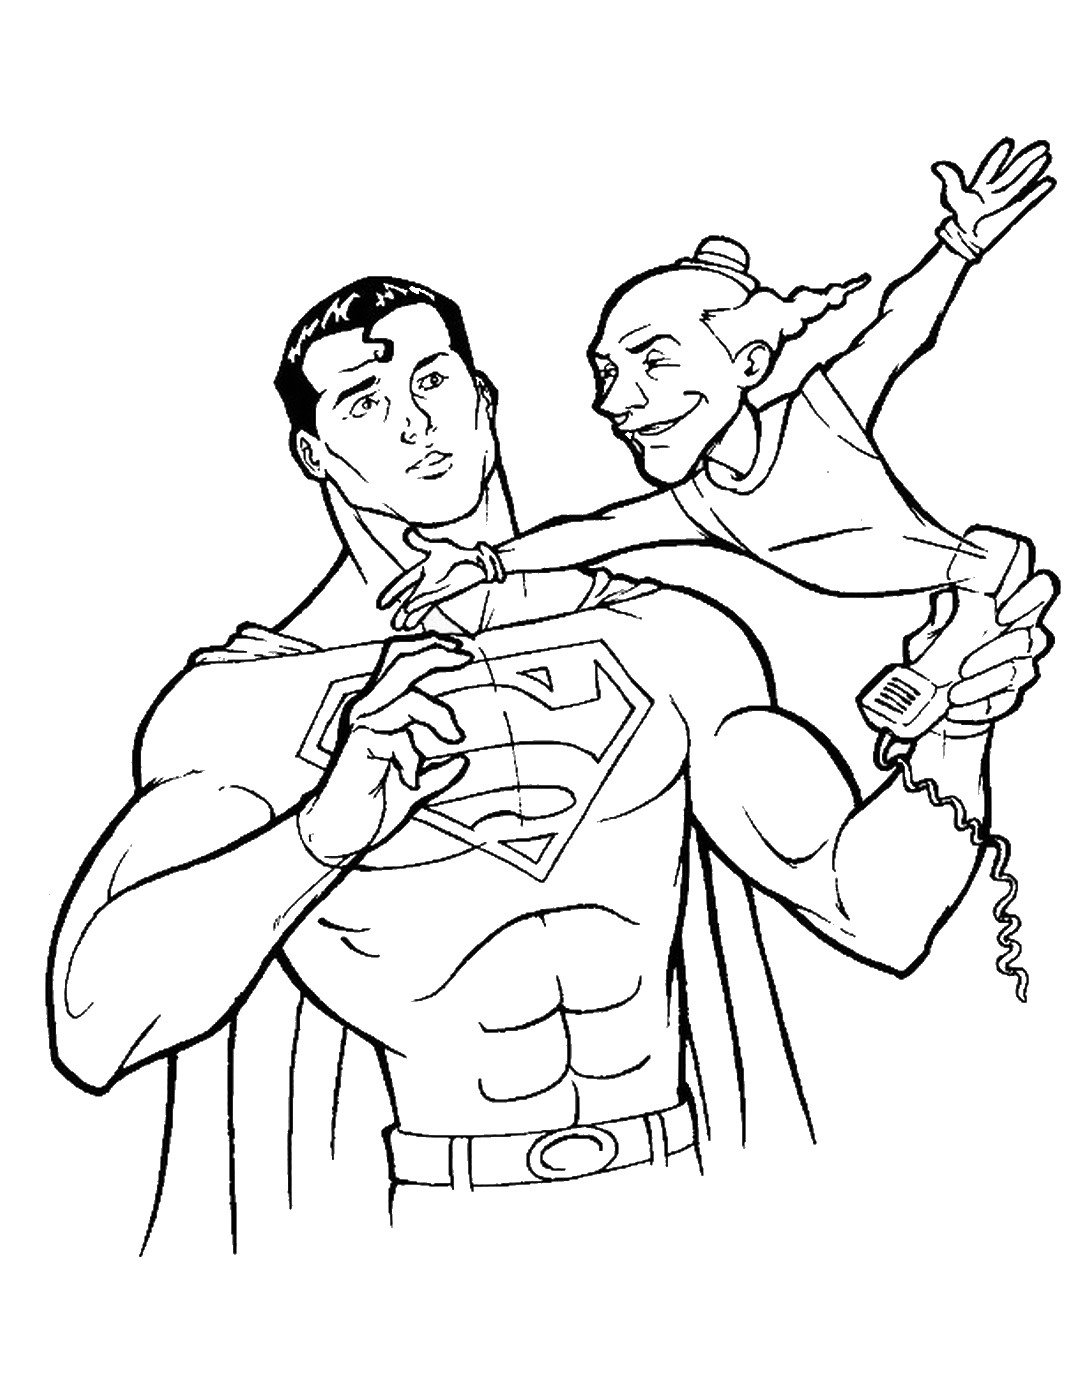 superman color pages sly superman coloring pages printable bill website superman pages color